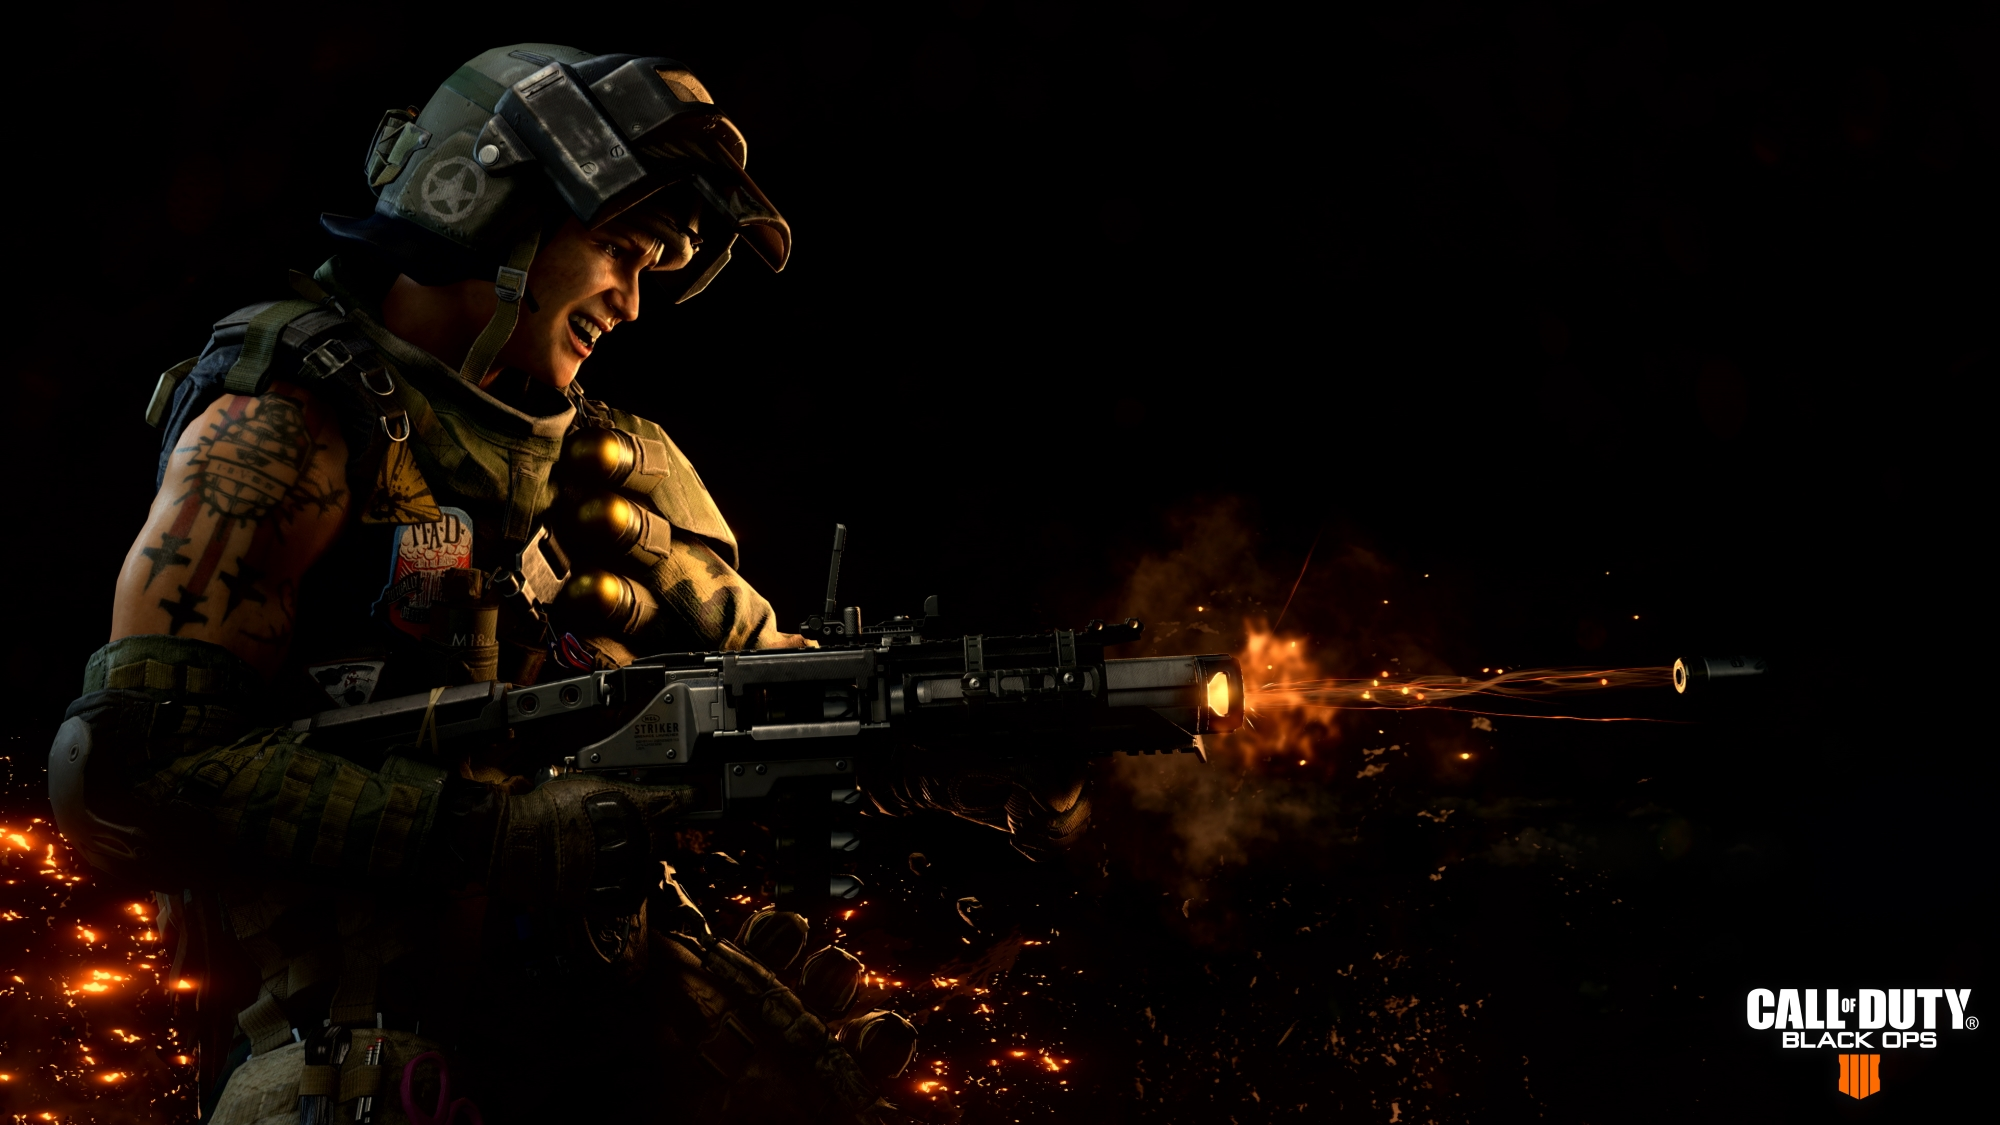 Call Of Duty: Black Ops 4 - what did you think of the reveal?